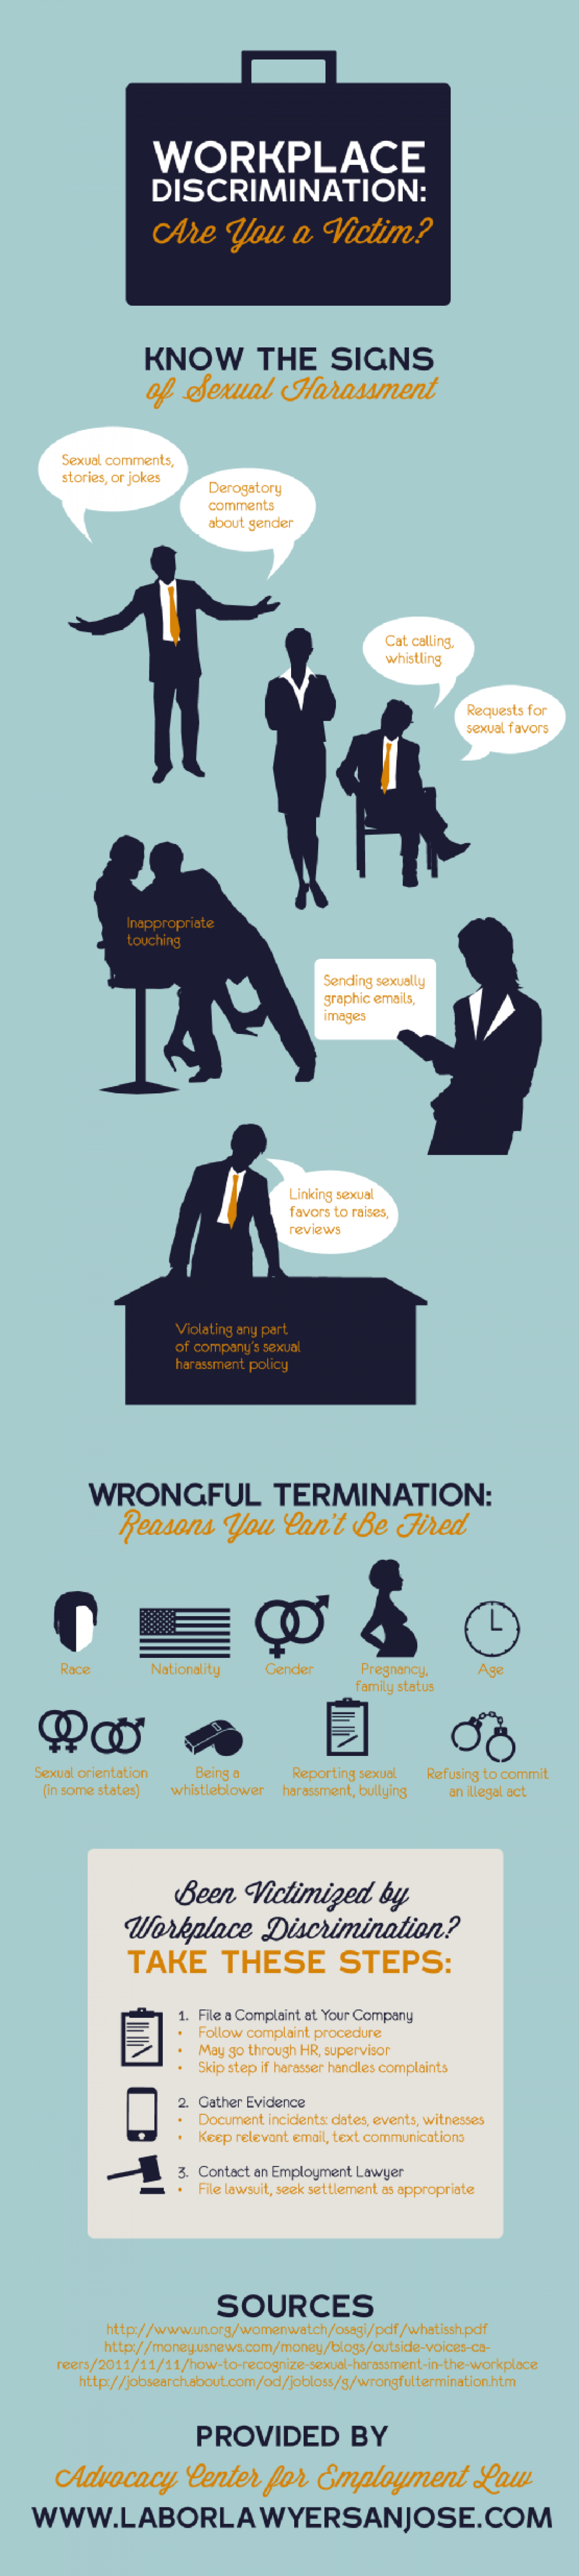 Workplace Discrimination: Are You a Victim? Infographic